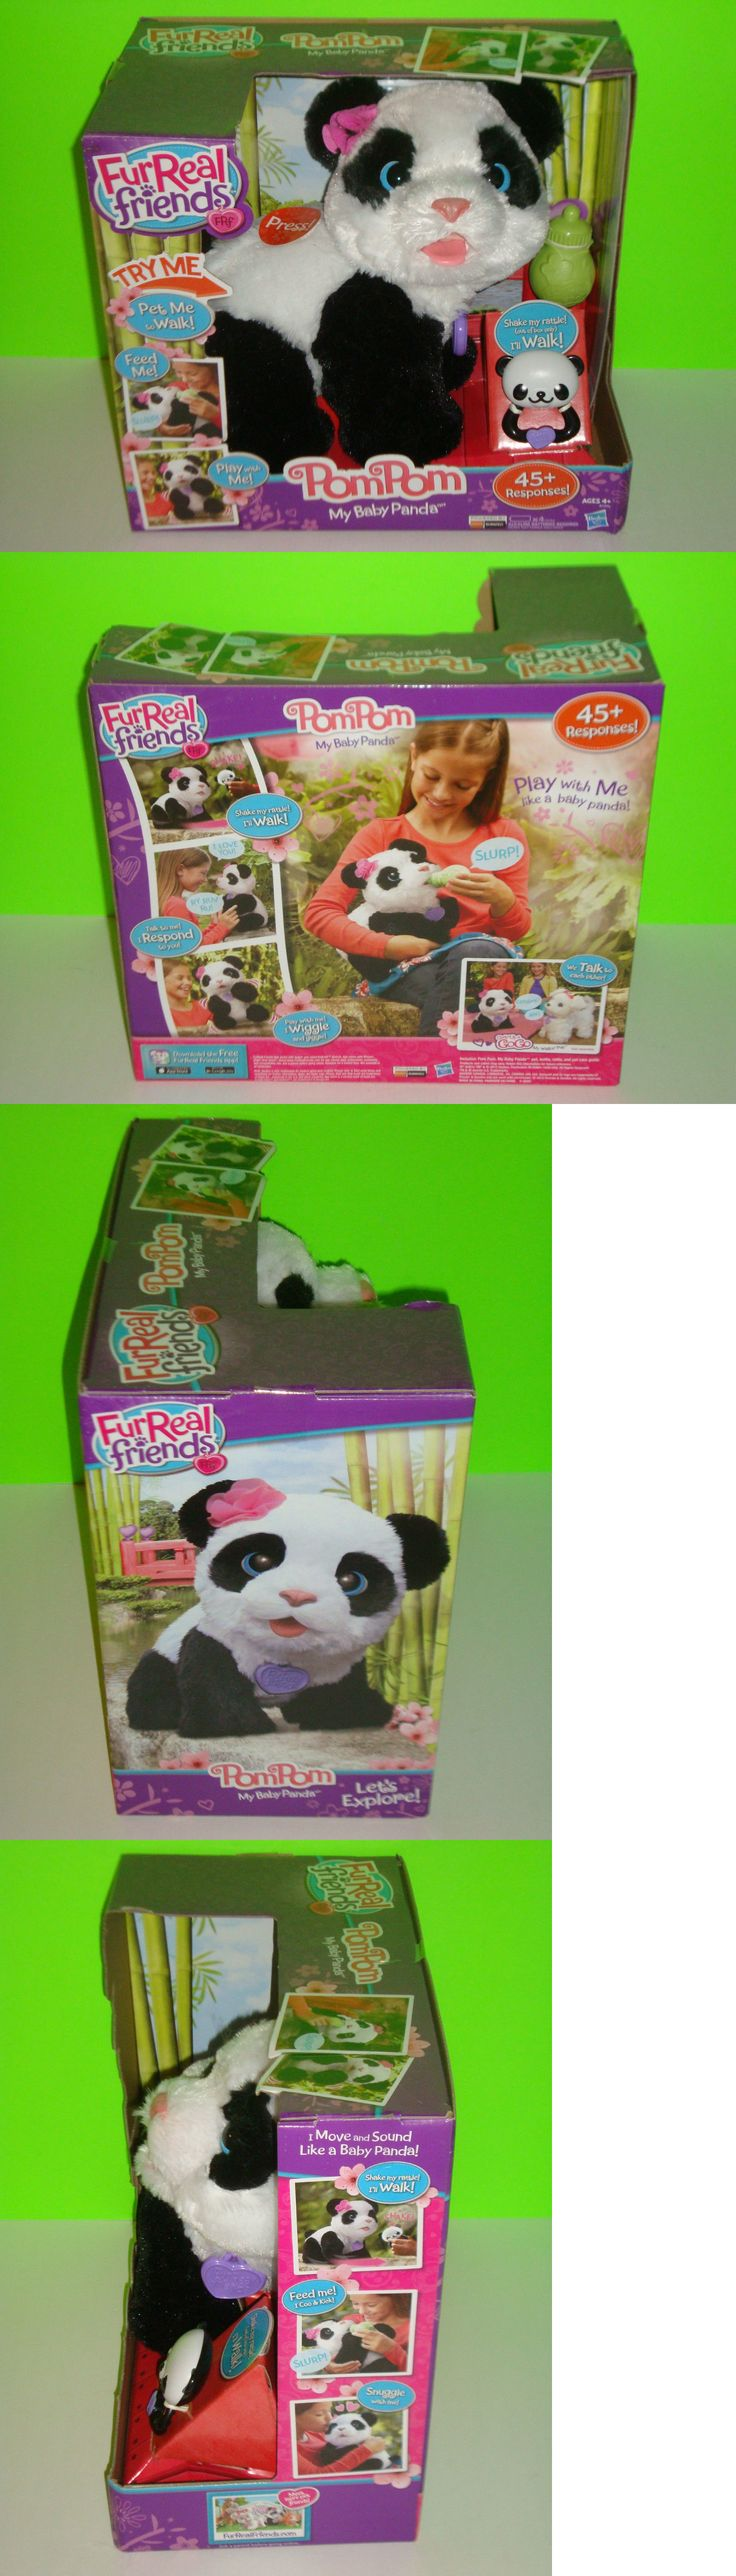 FurReal Friends 38288: Furreal Friends Pompom My Baby Panda Bear Pet Interactive Toy Fur Real Pompom -> BUY IT NOW ONLY: $74.99 on eBay!